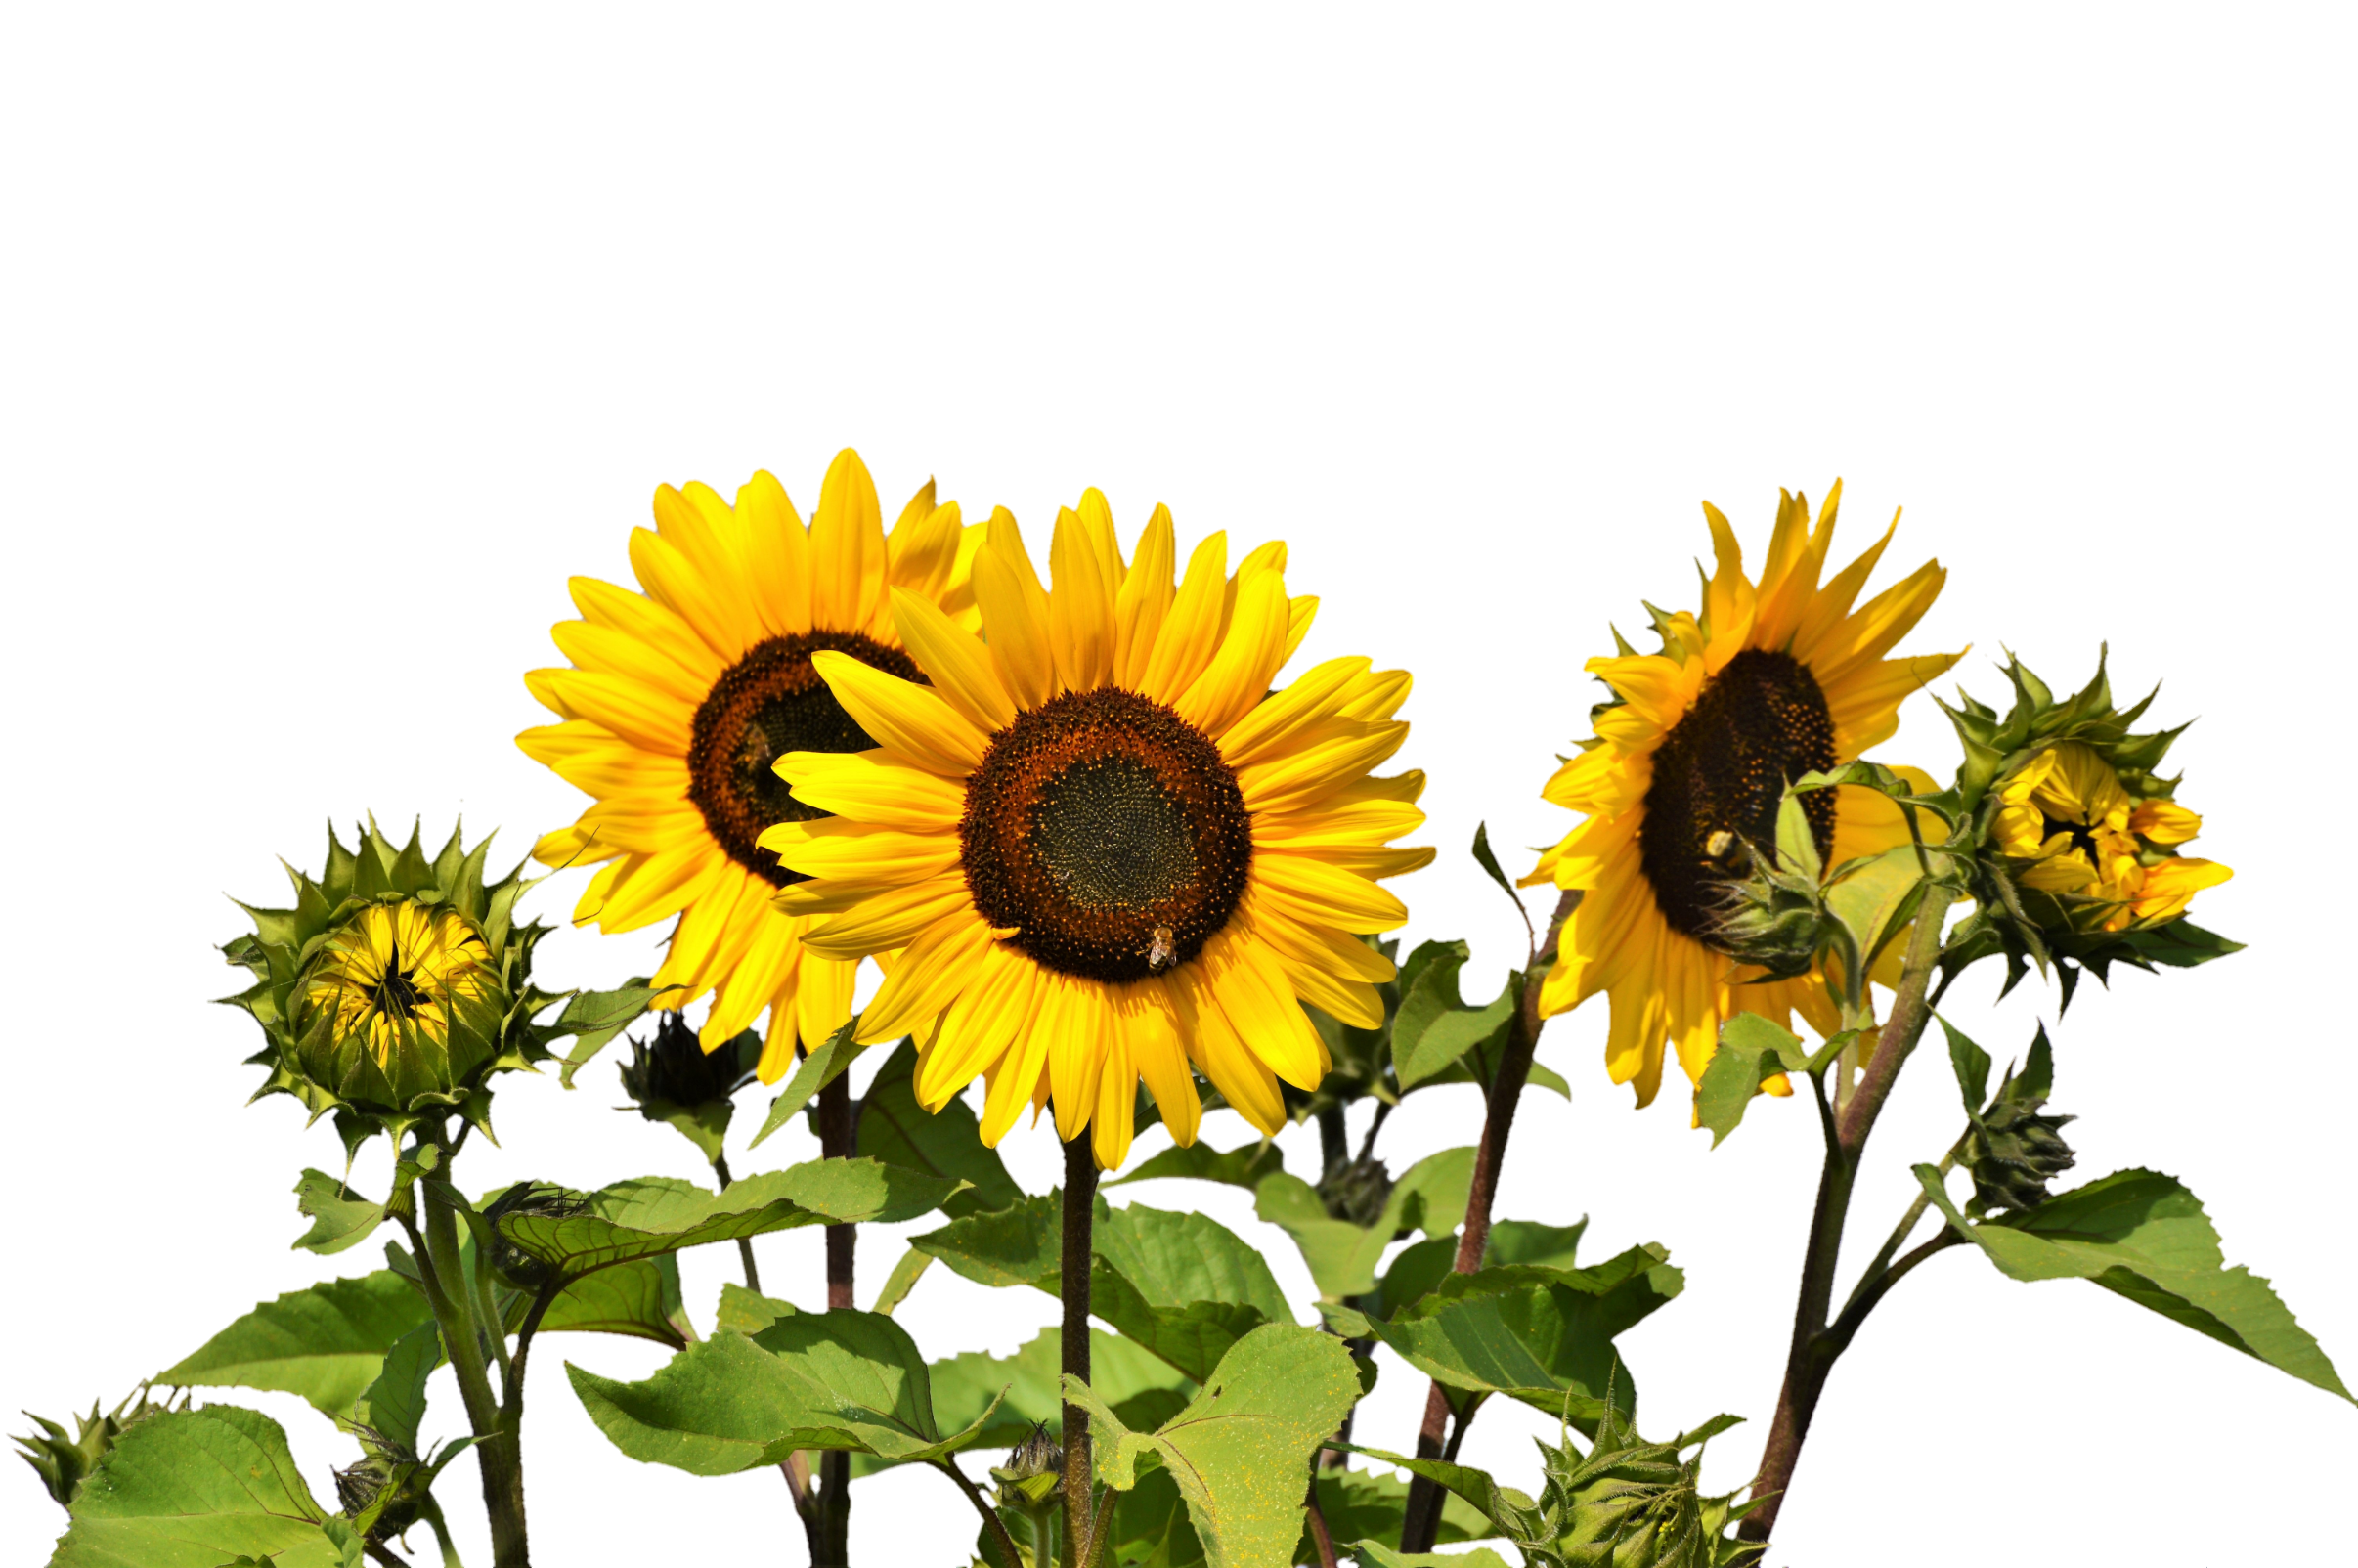 Sunflowers PNG Image.